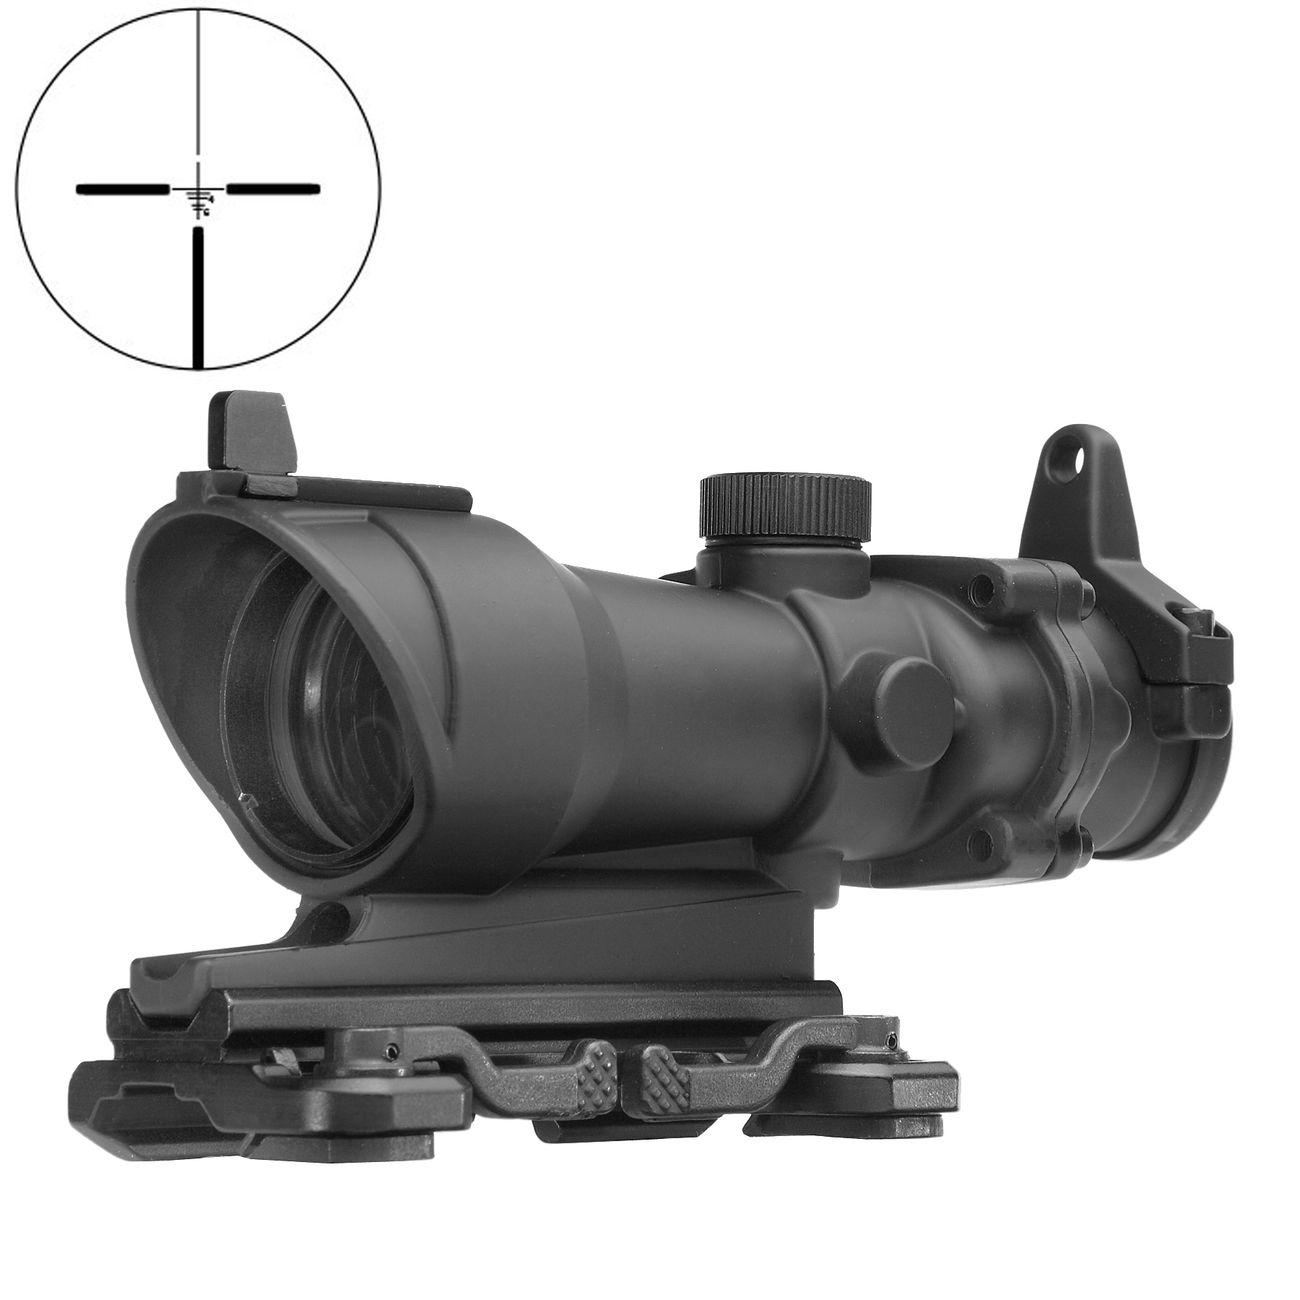 Aim-O TA01 Style Scope 4x32 mit QD-Mount schwarz AO 5310-BK 0